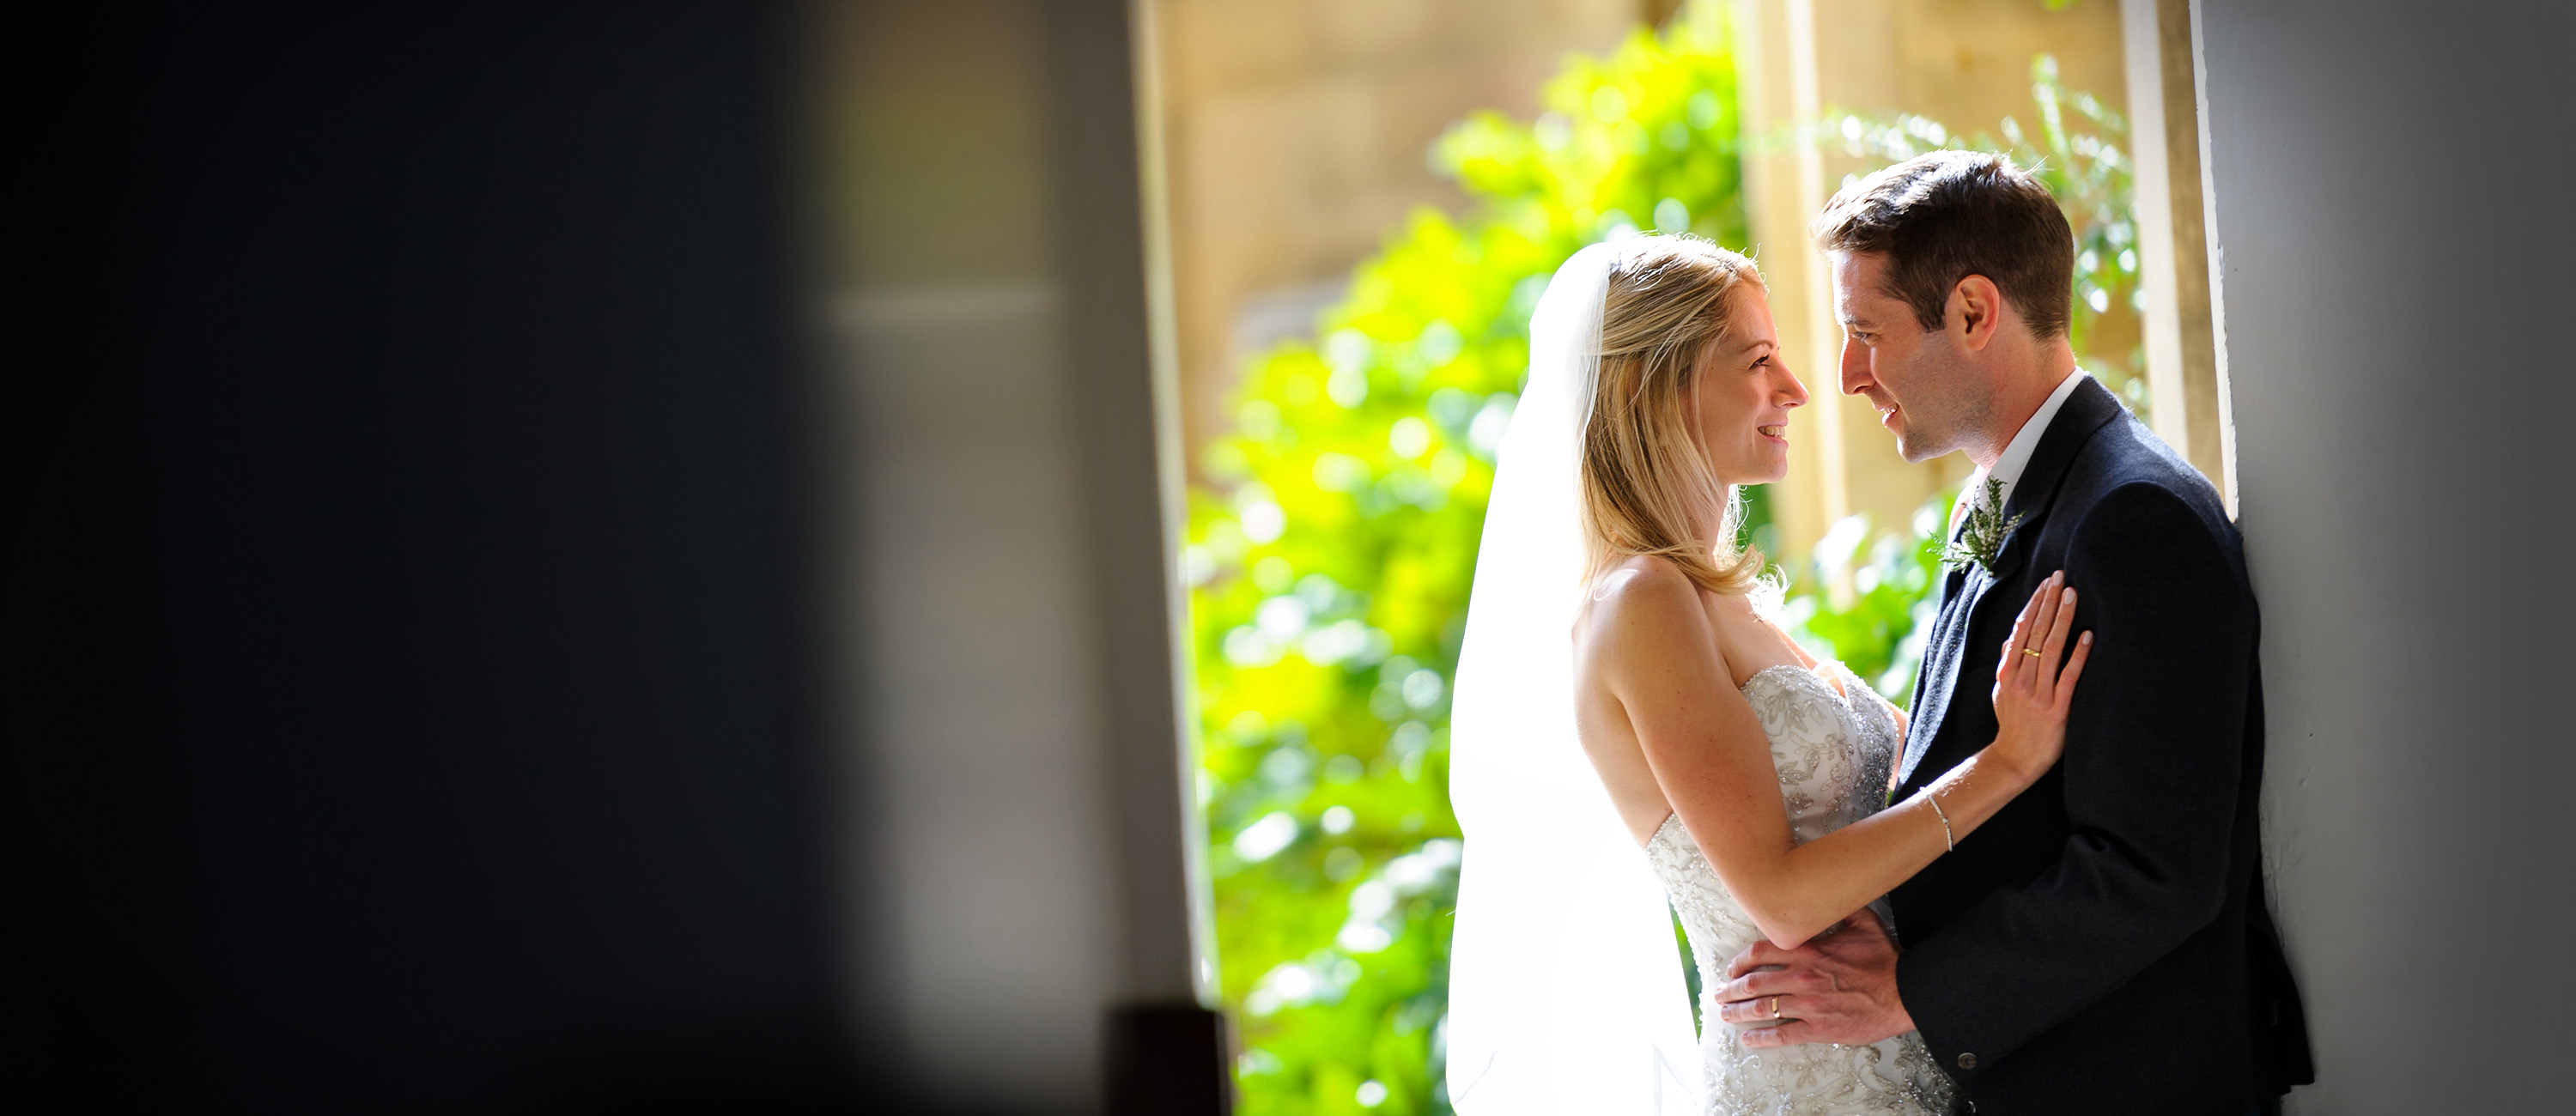 recommended wedding photographer corpus christi college cambridge